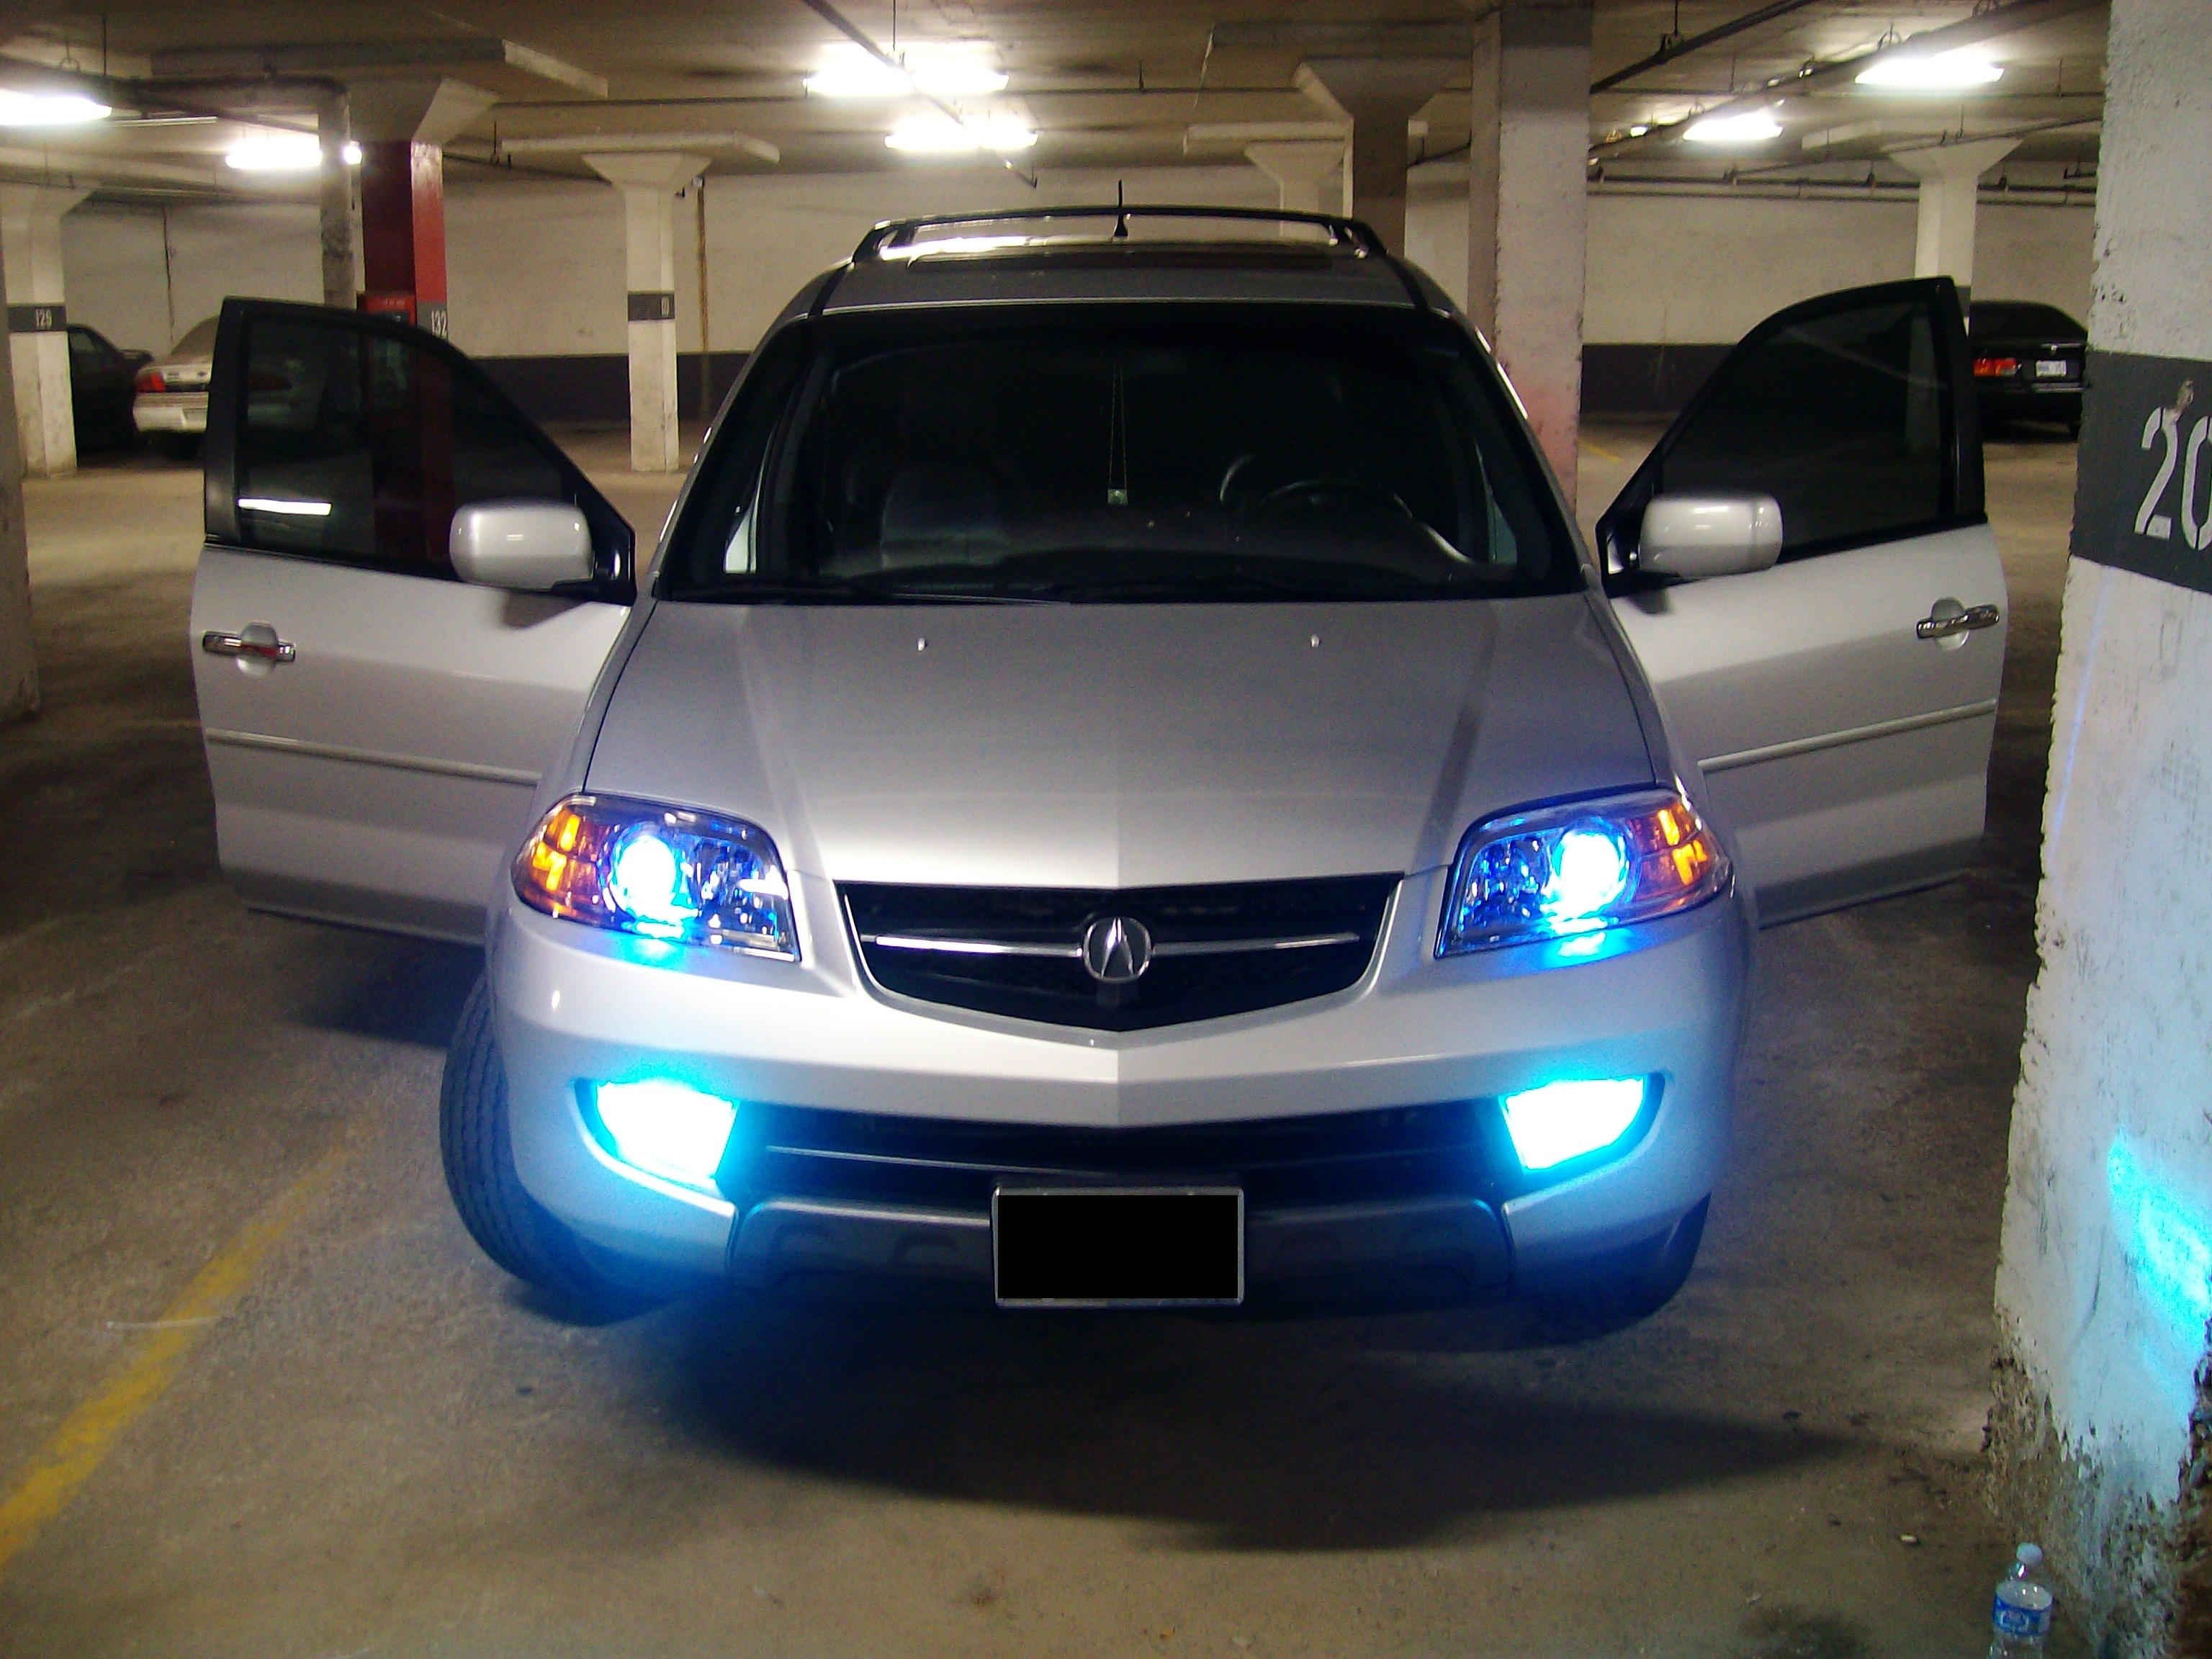 Projectors On MDX Acura MDX Forum Acura MDX SUV Forums - 2004 acura mdx headlights